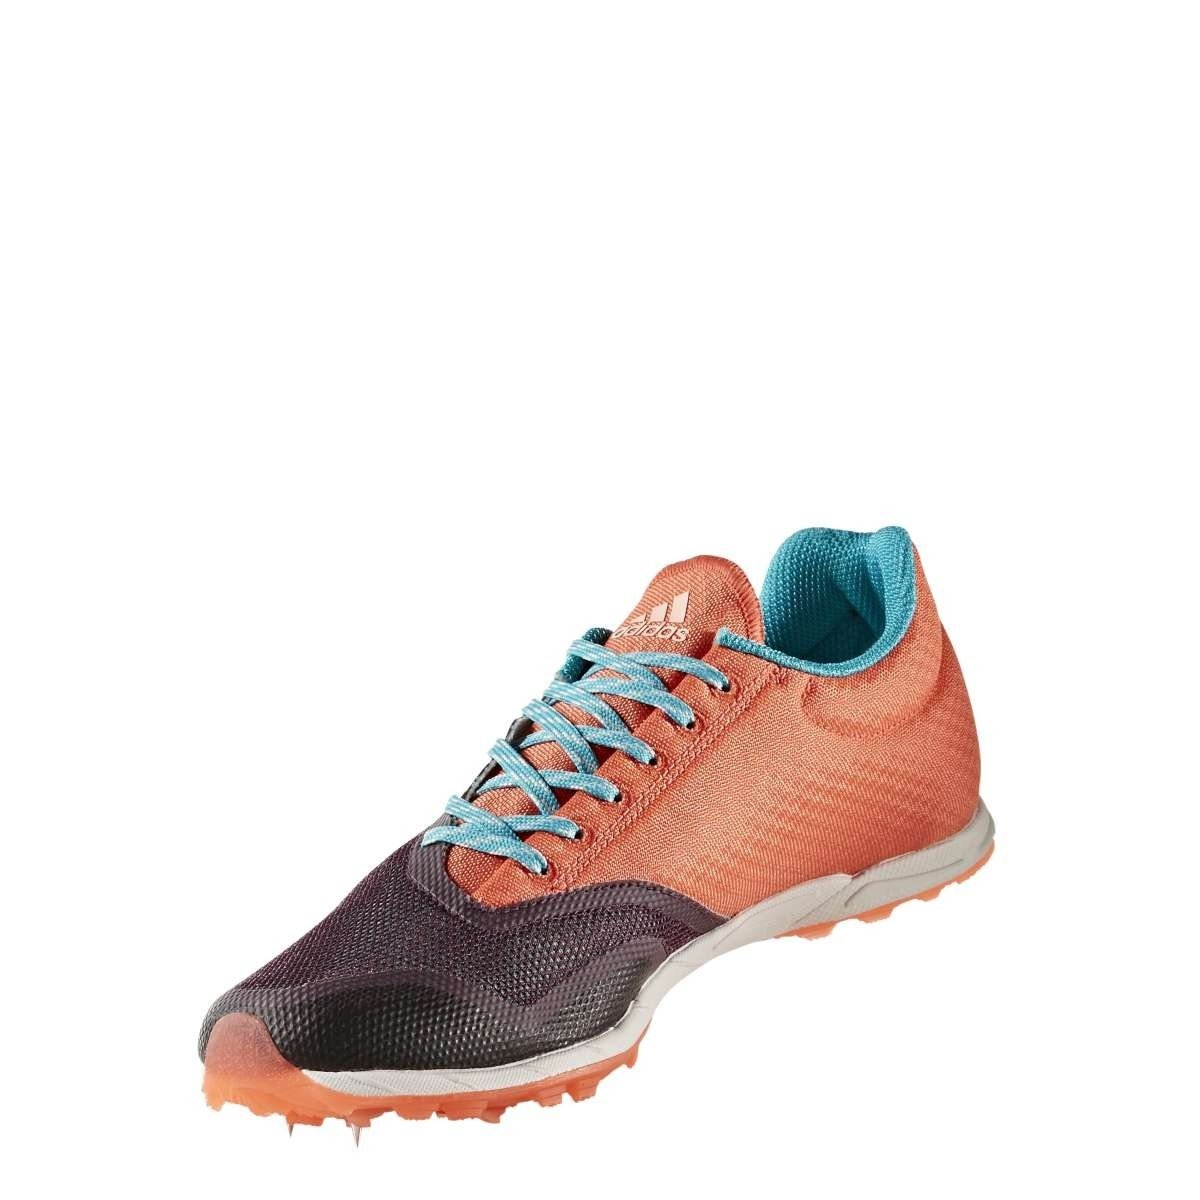 adidas - XCS W - S76871 - Color: Violet-Orange - Size: 9.5 by adidas